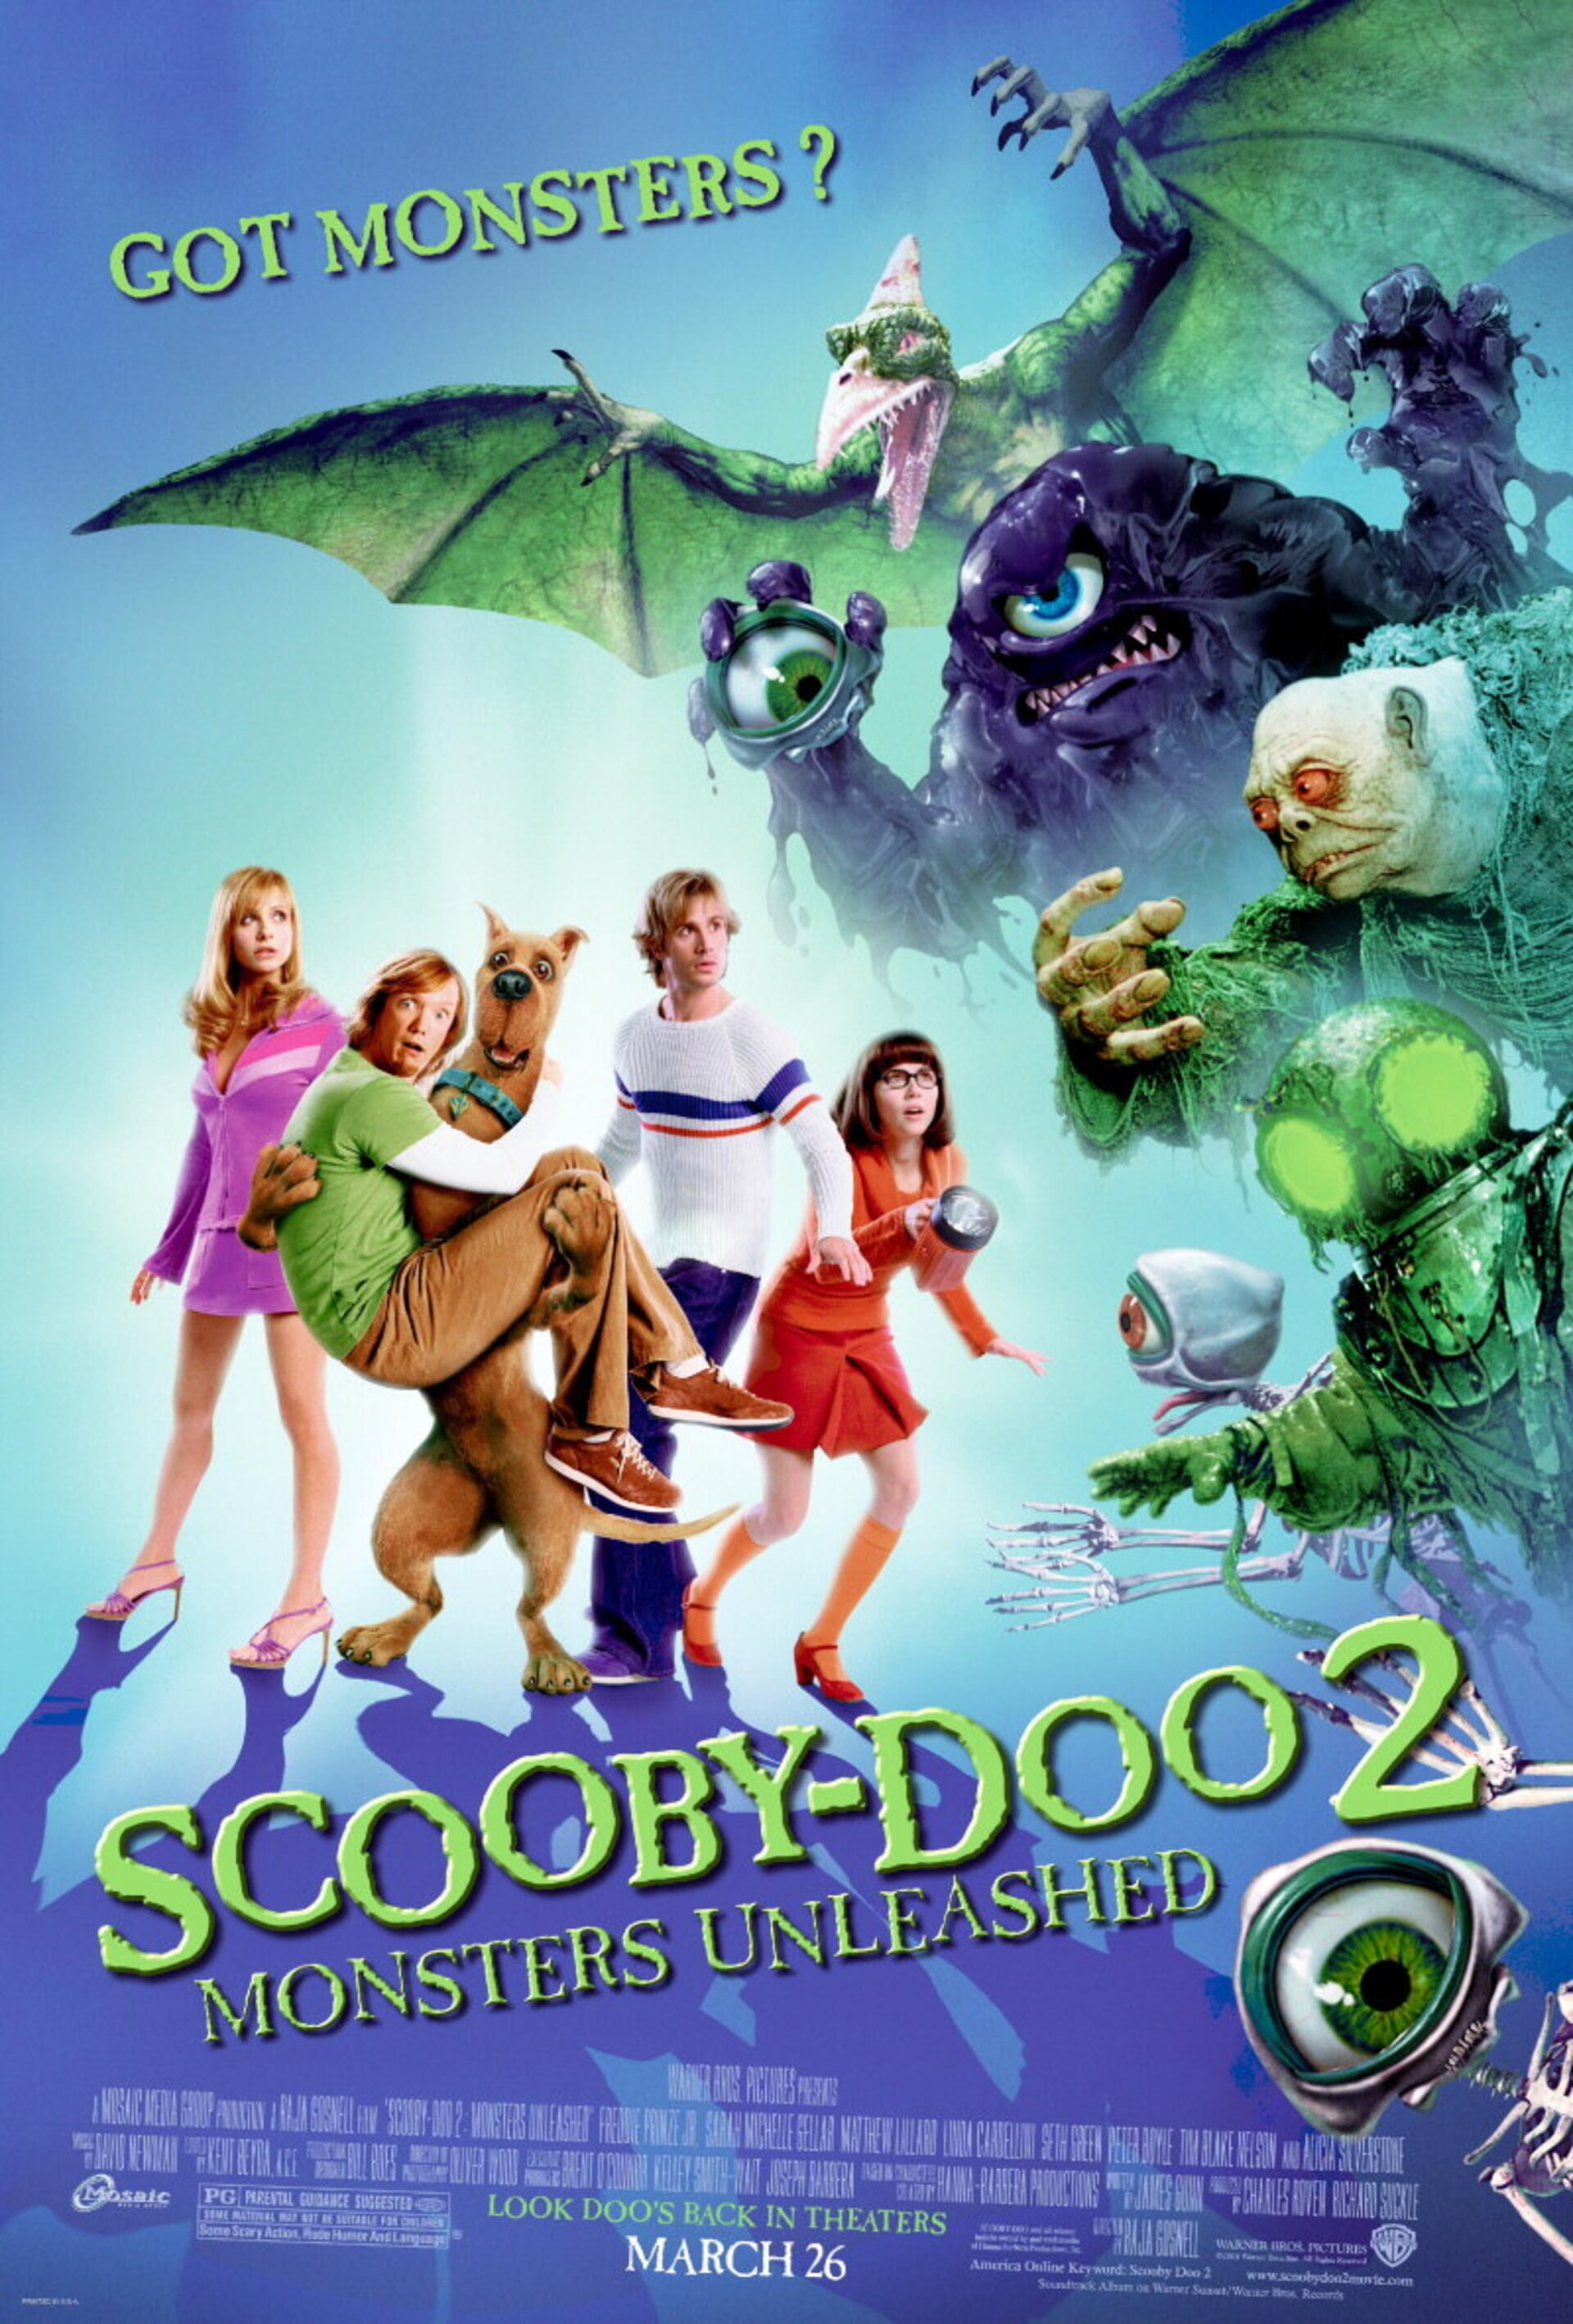 Scooby-doo 2: Monsters Unleashed - Poster 1